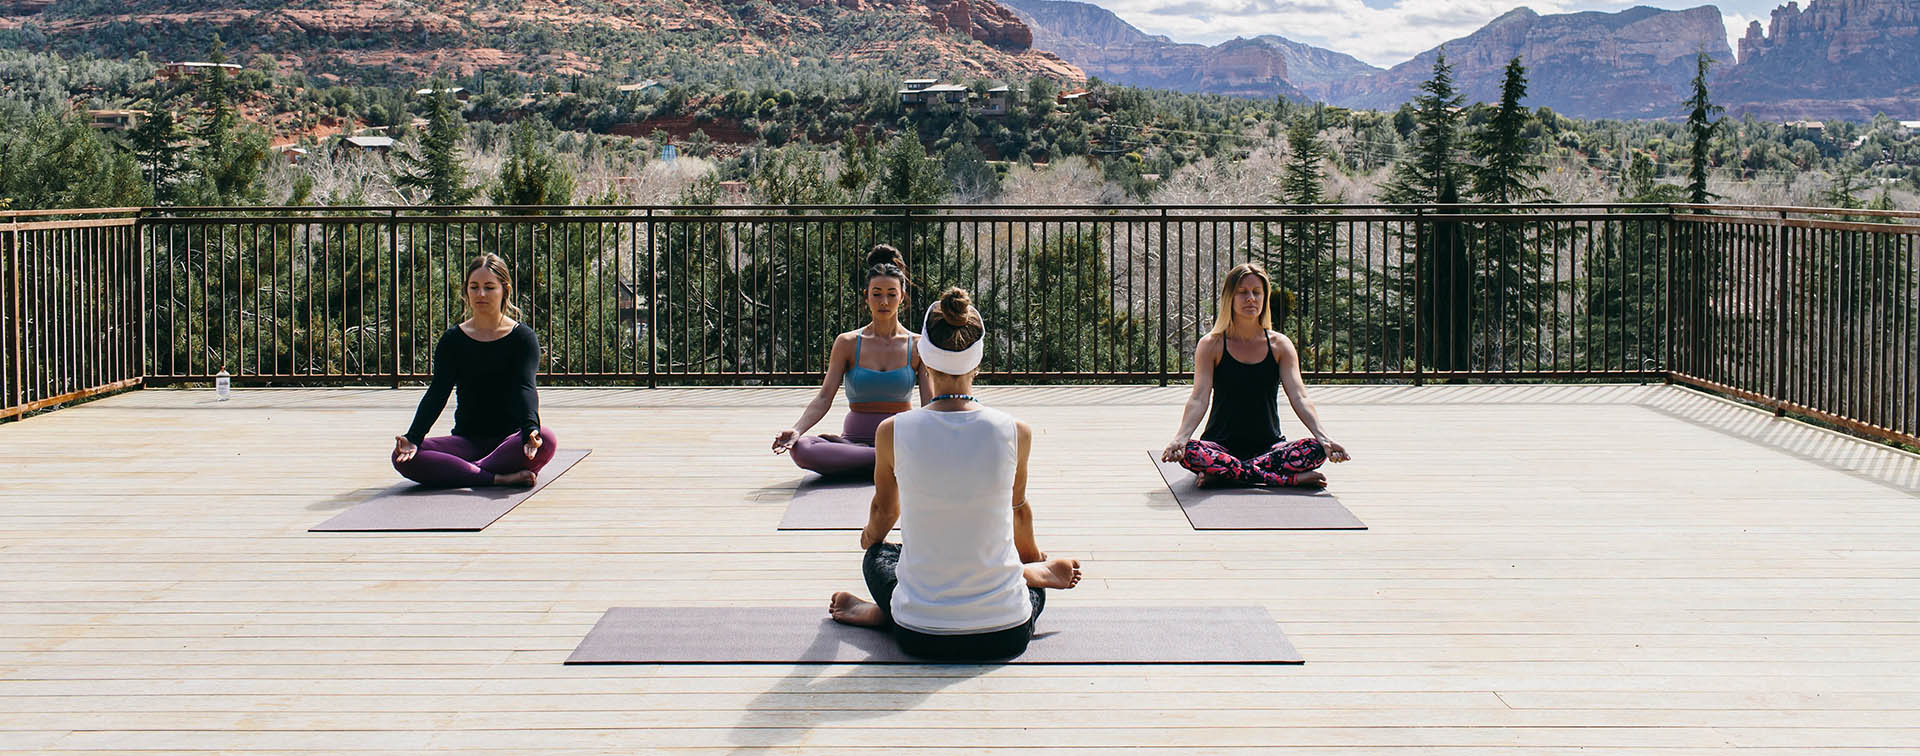 a Private Yoga exercise on the SpiritSong terrace